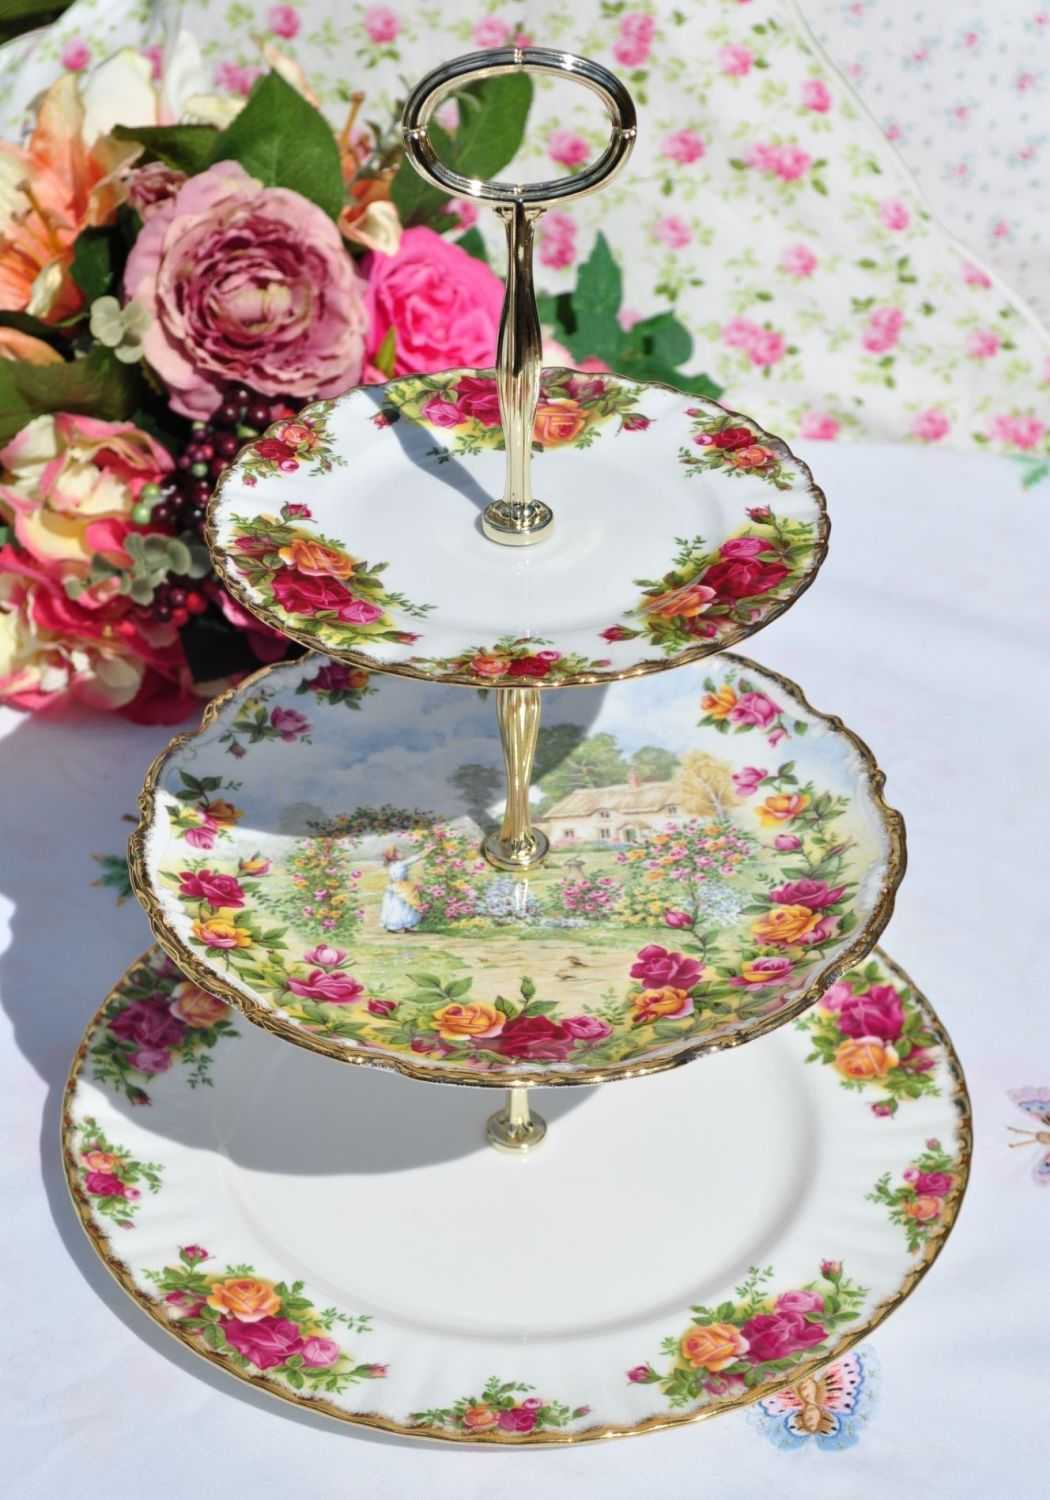 Royal Albert Old Country Roses & Cottage Scene Vintage 3 Tier Cake Stand